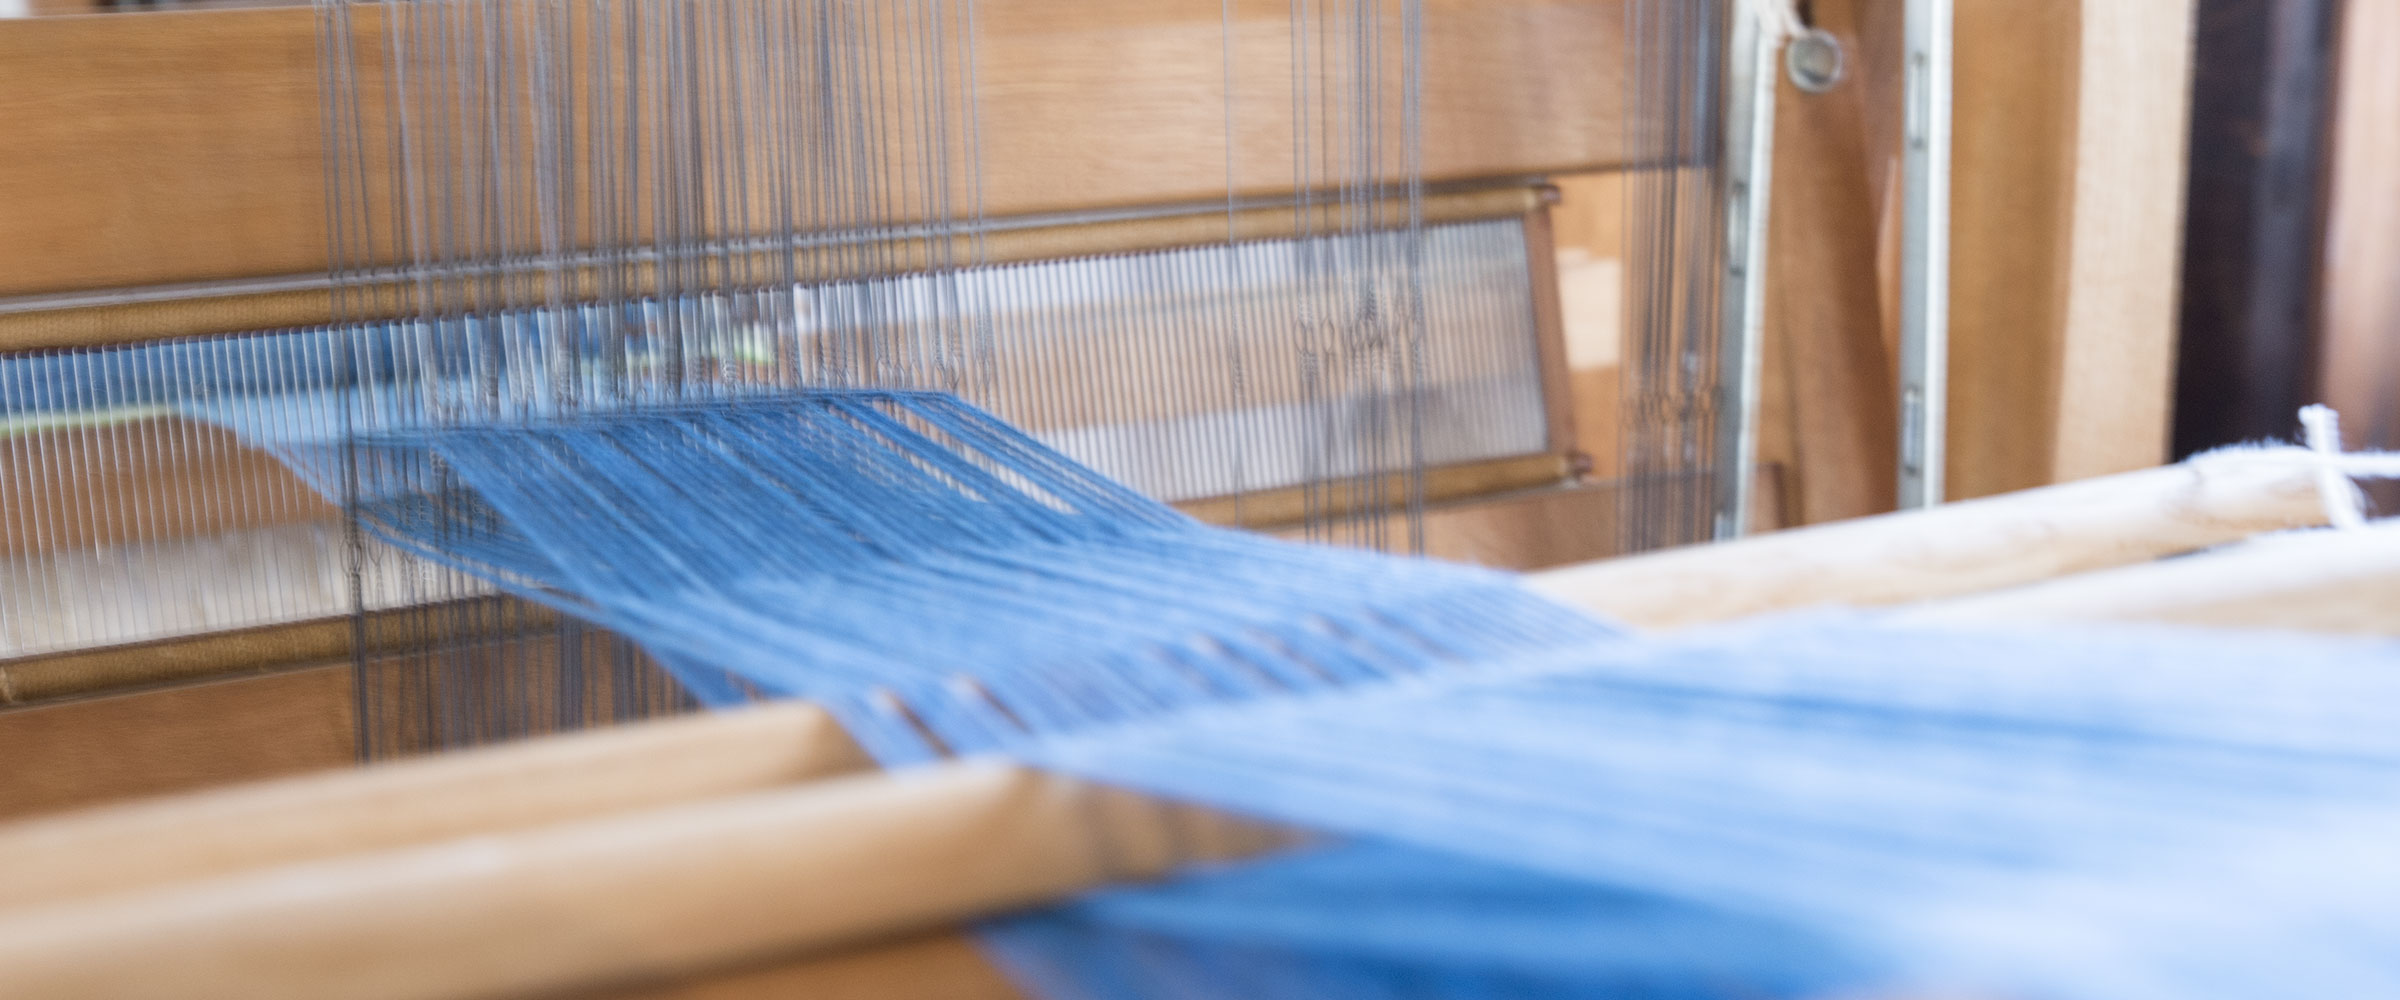 Trial class for weaving